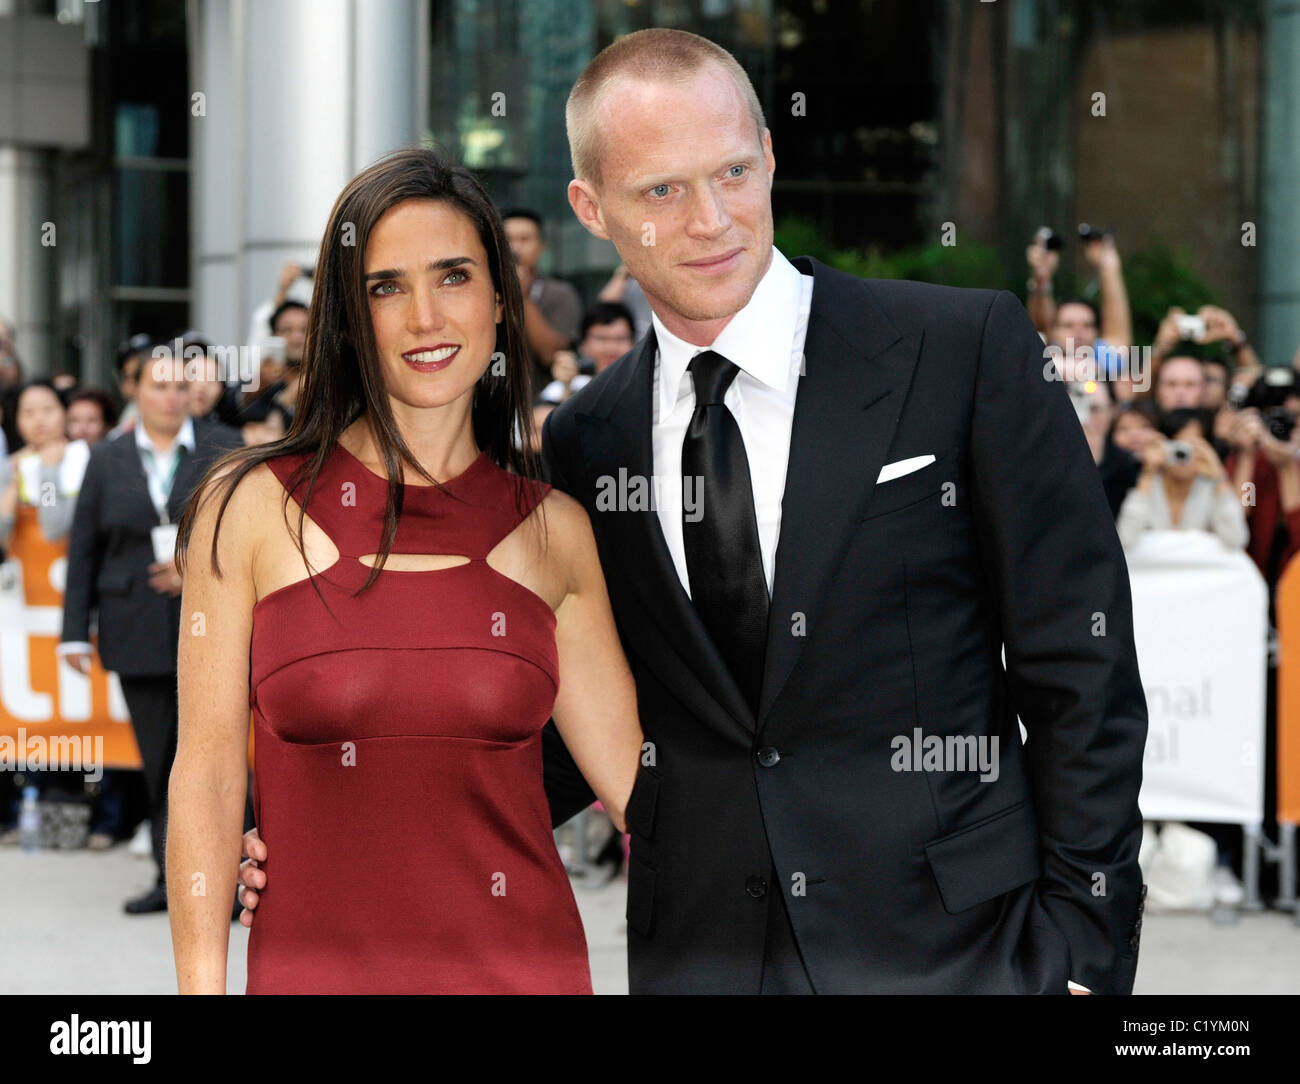 actress jennifer connelly and her husband paul bettany arriving at stock photo royalty free. Black Bedroom Furniture Sets. Home Design Ideas